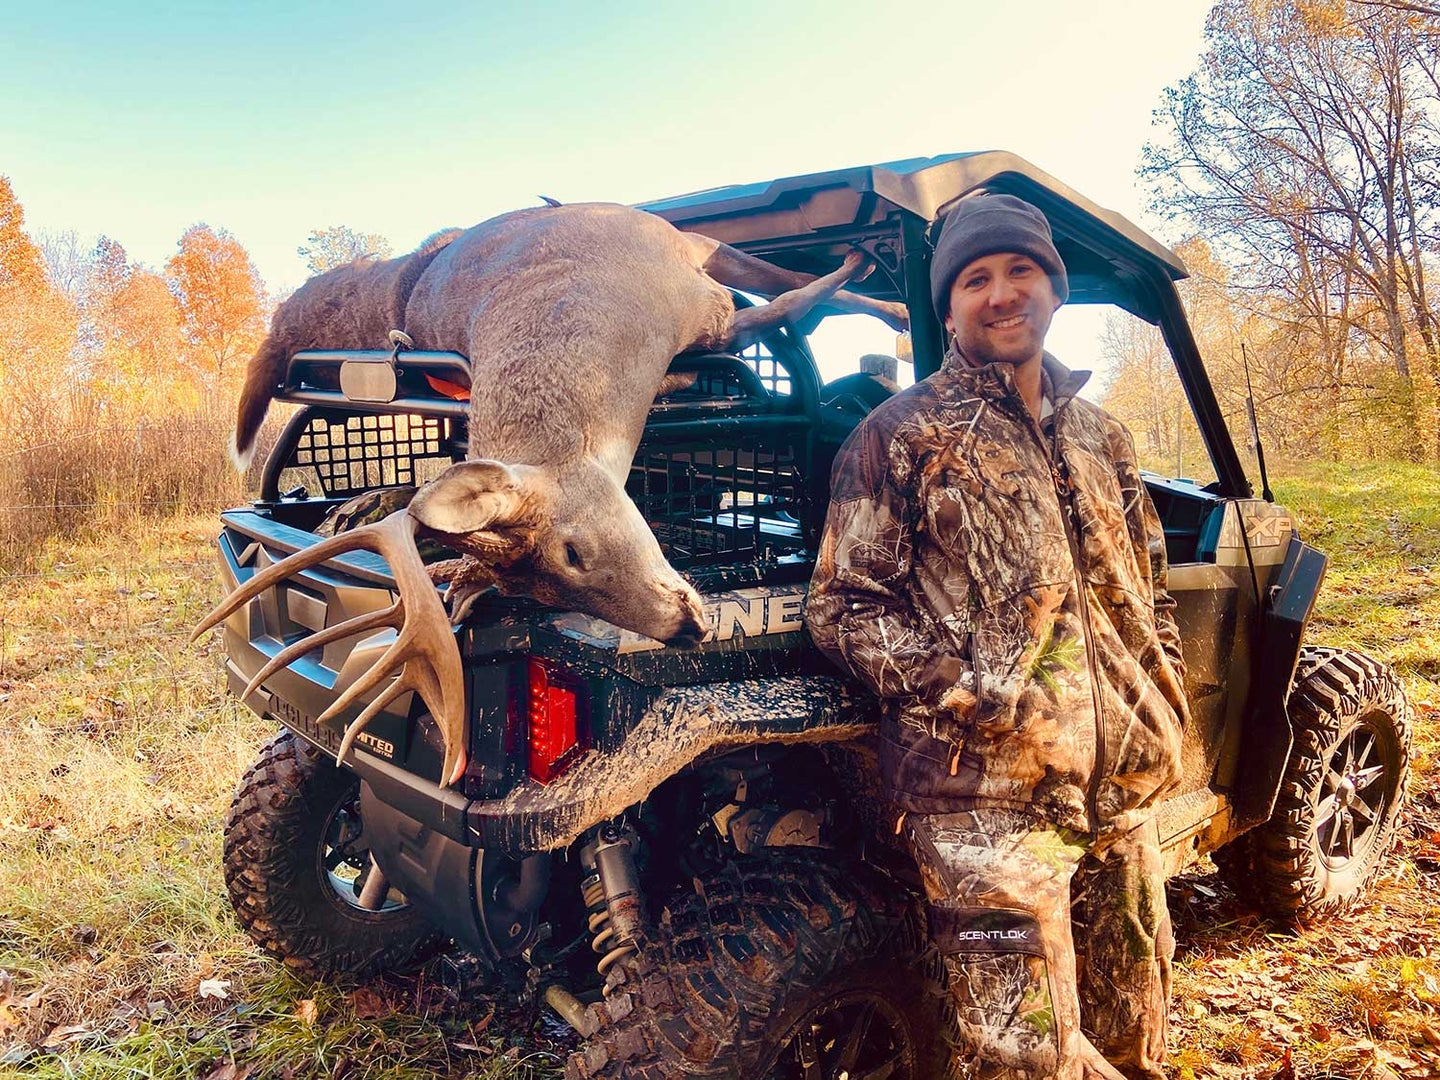 A hunter stands beside a Polaris General UTV with a dropped whitetail deer on the tailgate.